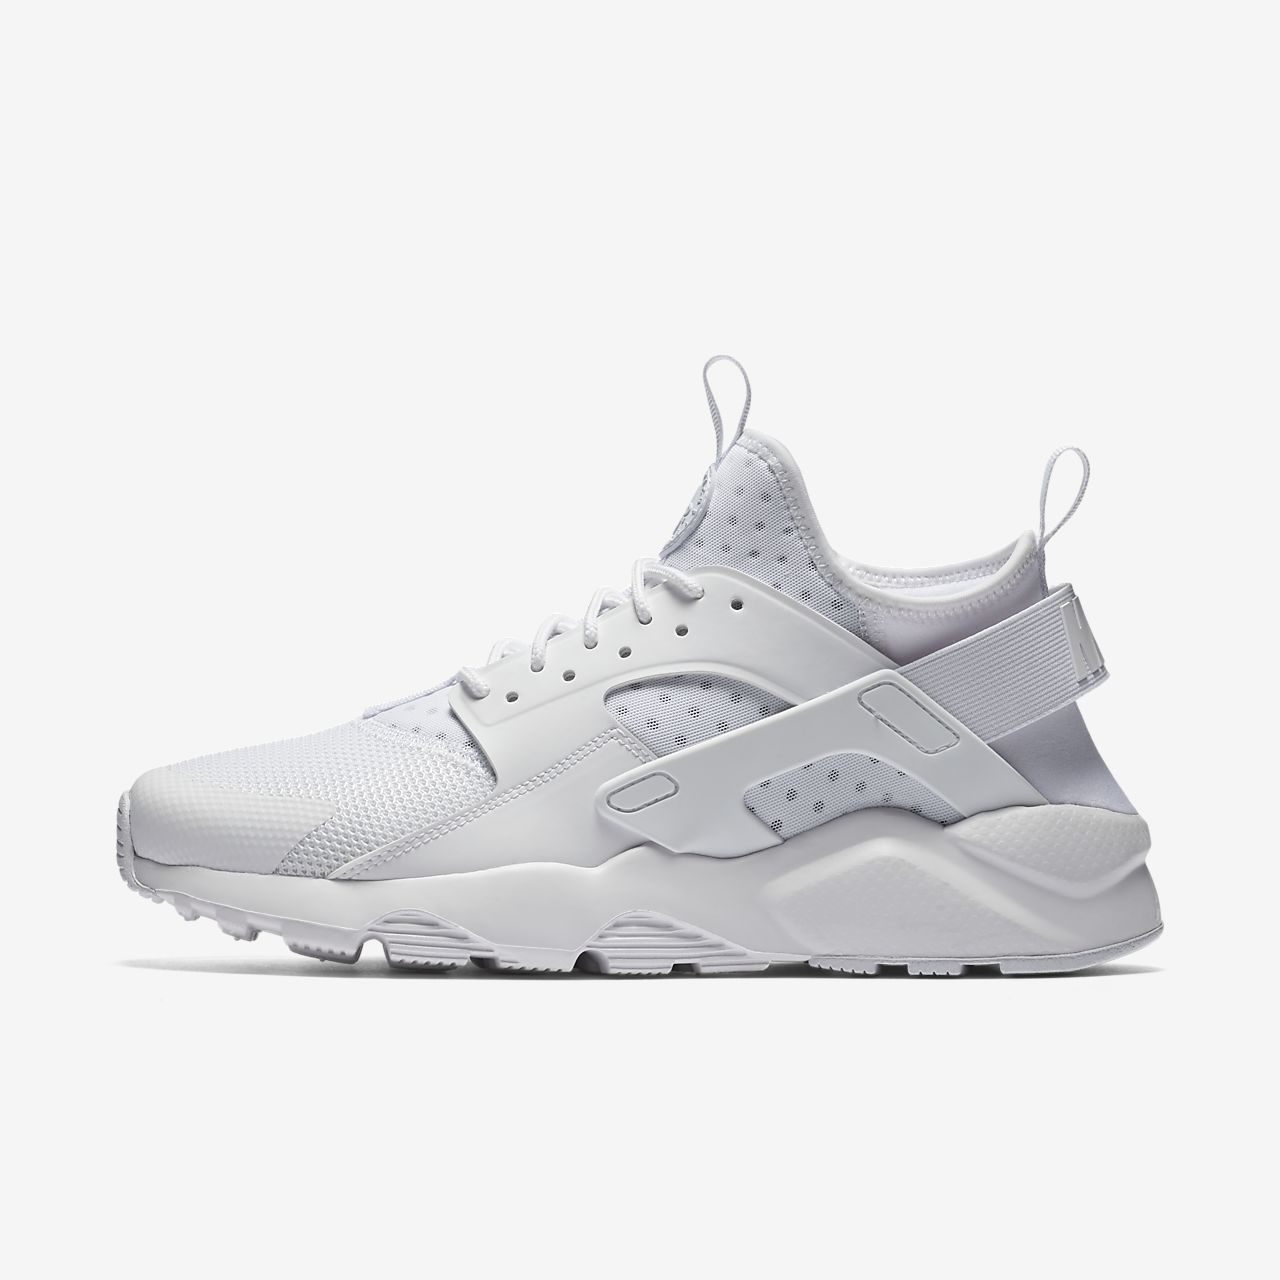 super popular ad4a0 3723b Nike Air Huarache Ultra